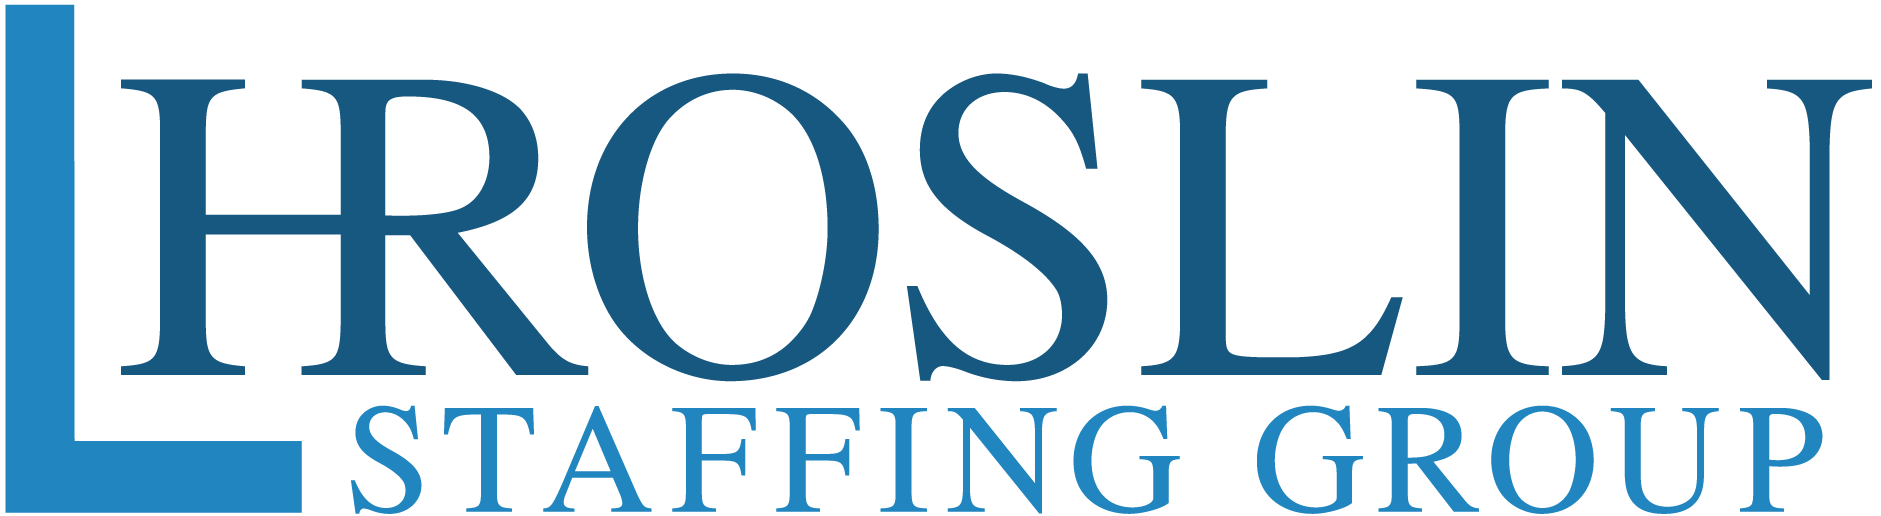 H. Roslin Staffing Group